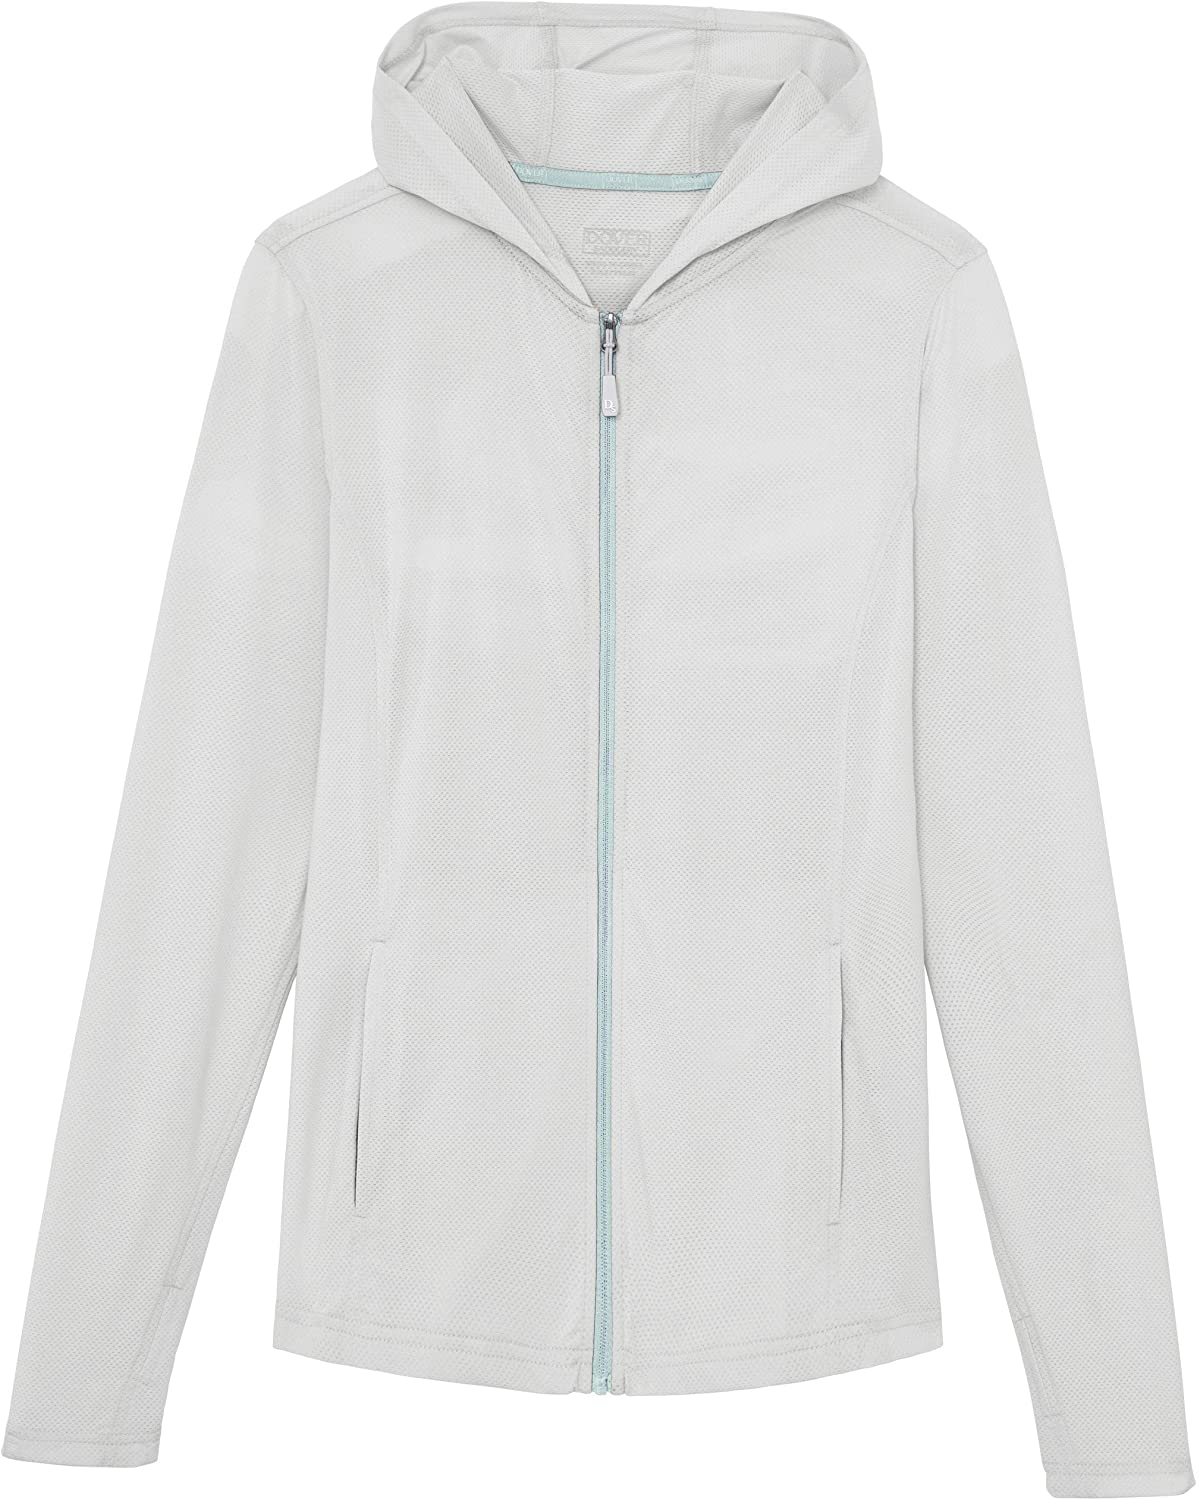 Dover Saddlery Rider Fly Shield Iced Large Hoodie NEW before selling Aqua Silver trust